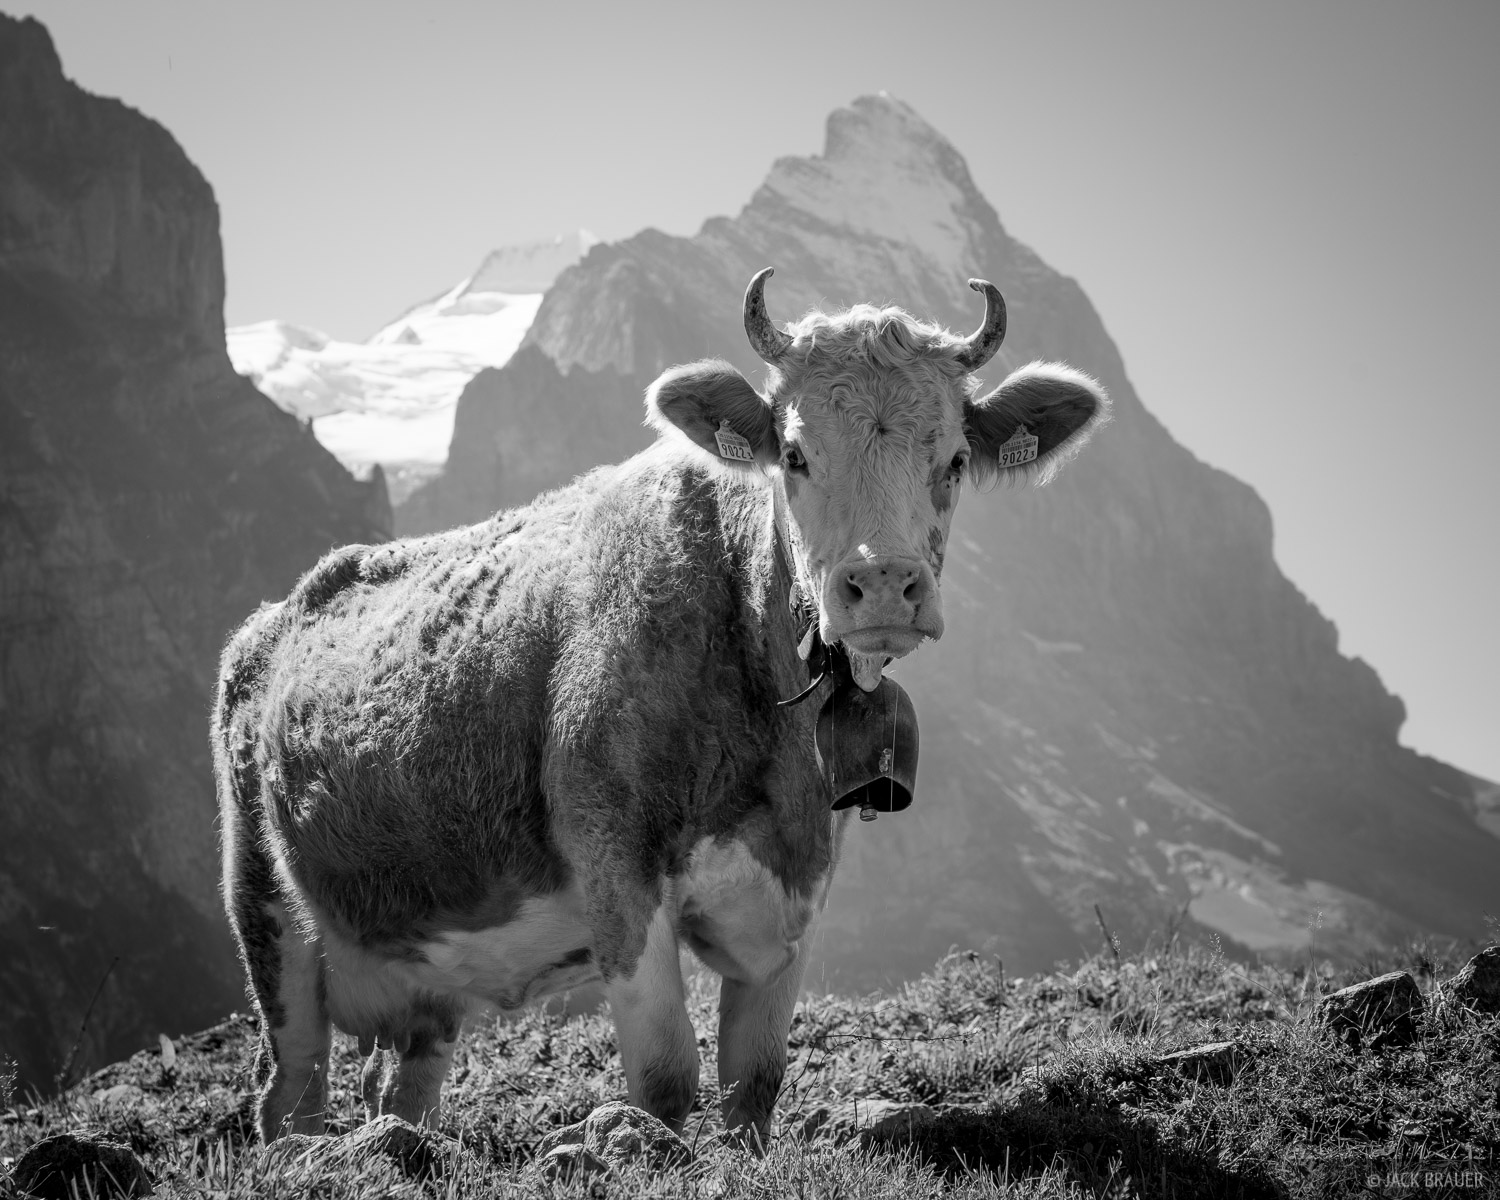 Cow and Eiger